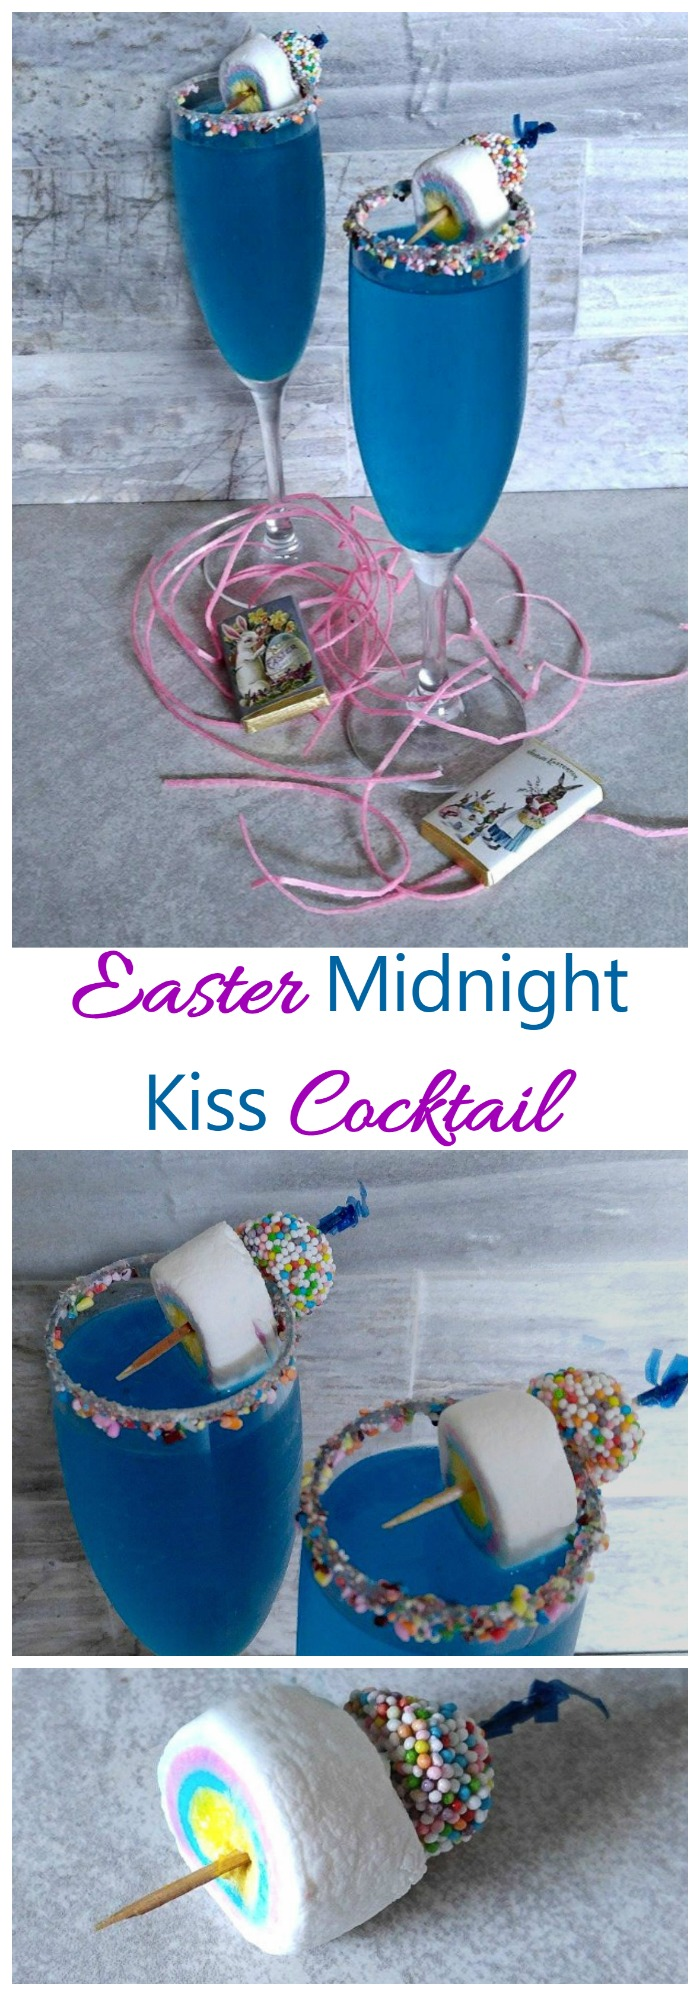 This Easter midnight kiss cocktail is the perfect drink to share with a loved one while the kids are having an Easter Egg hunt. 4 21+